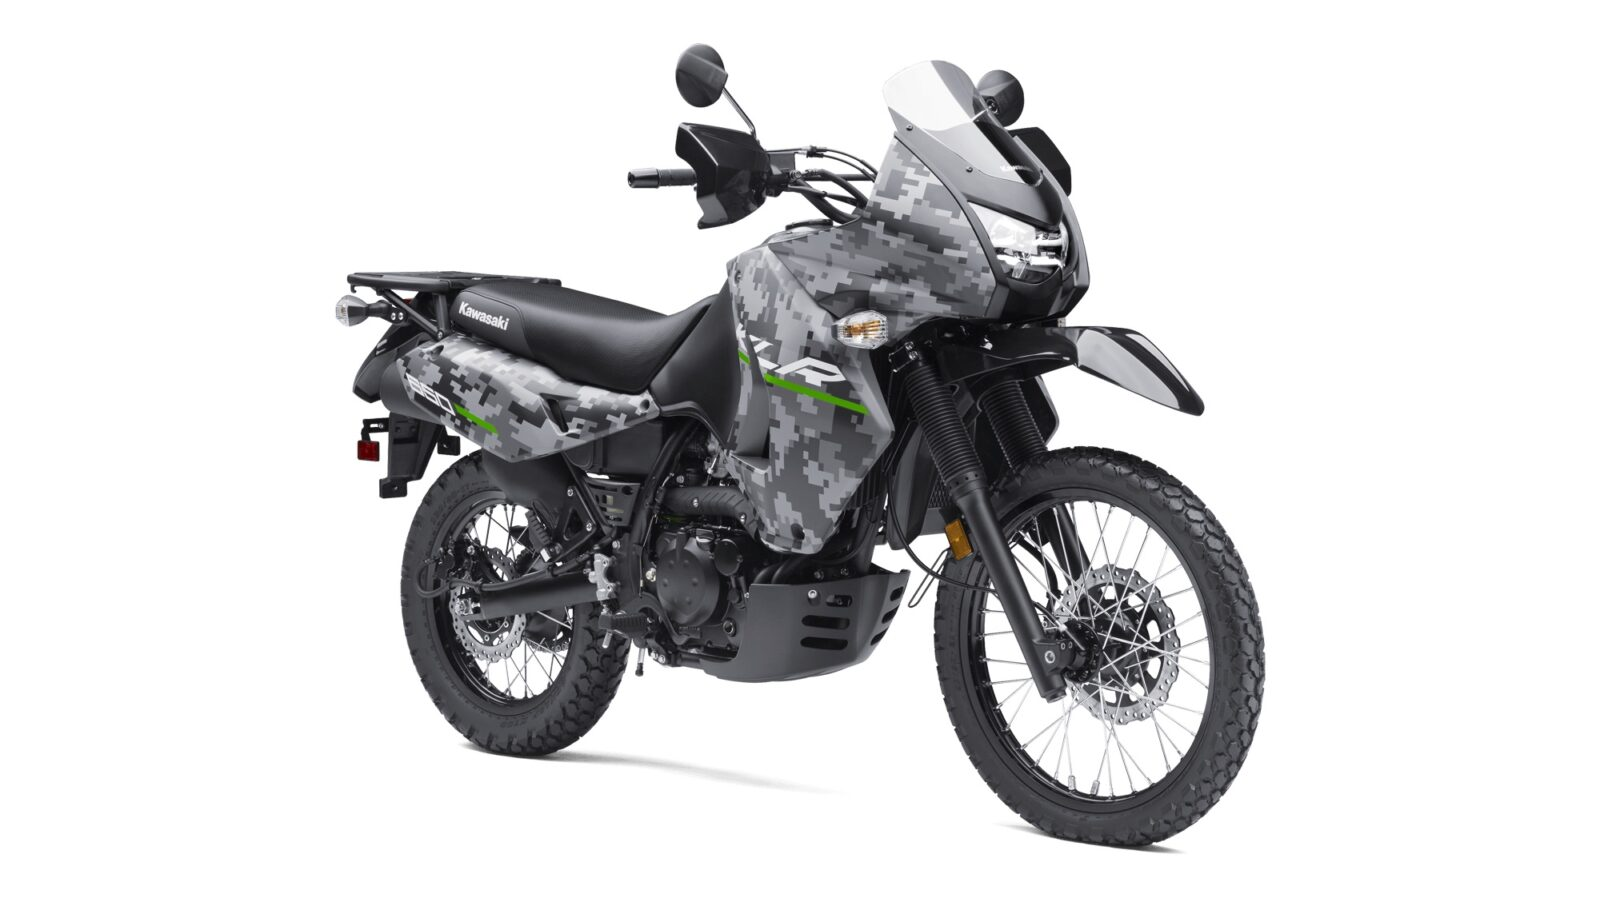 kawa 1600x898 - A Brief History of the Kawasaki KLR650